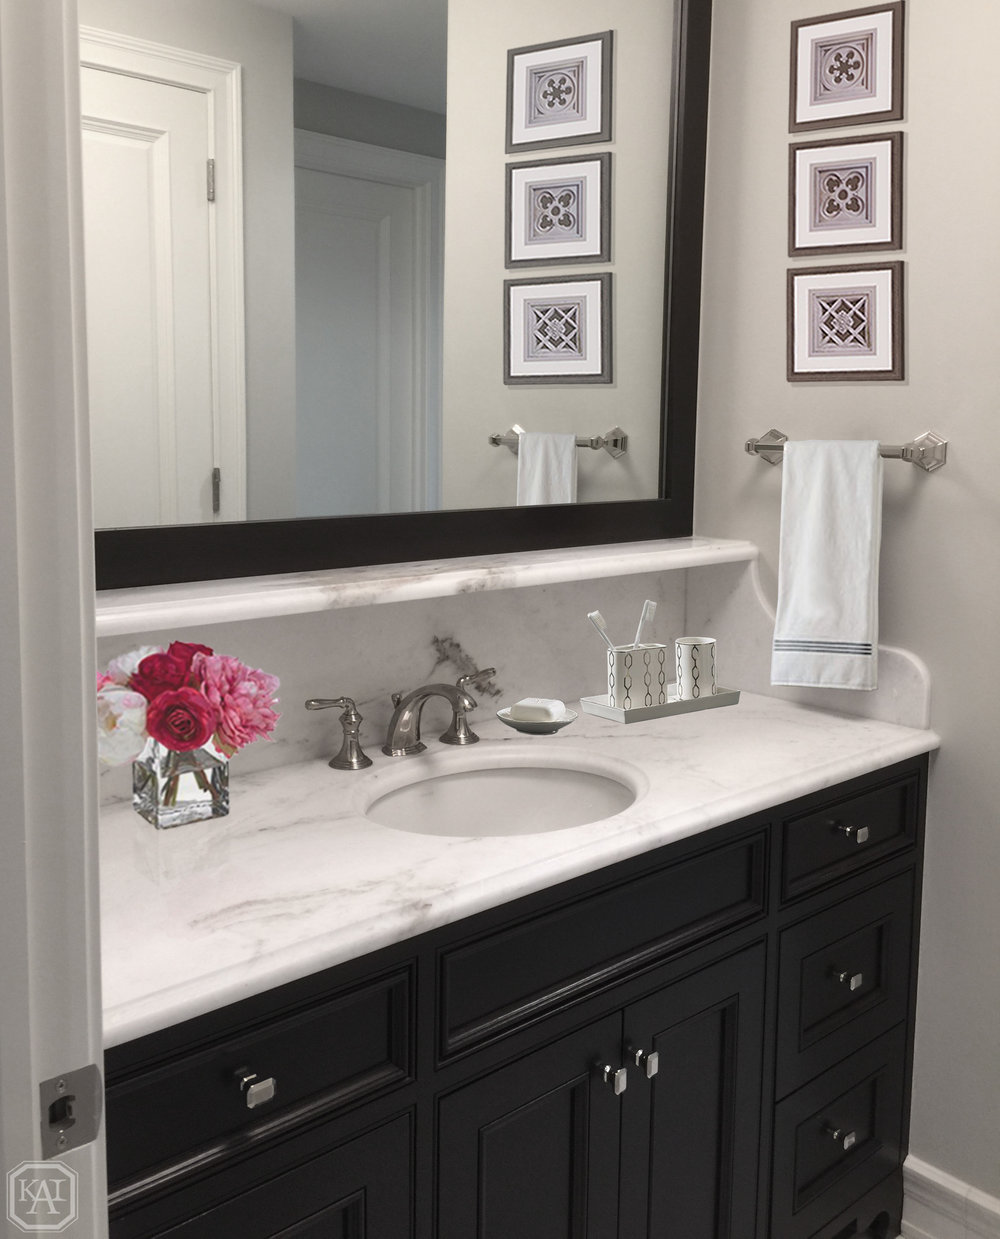 ZITELLA GUEST BATHROOM VANITY AND ARTWORK 1_FINAL.jpg